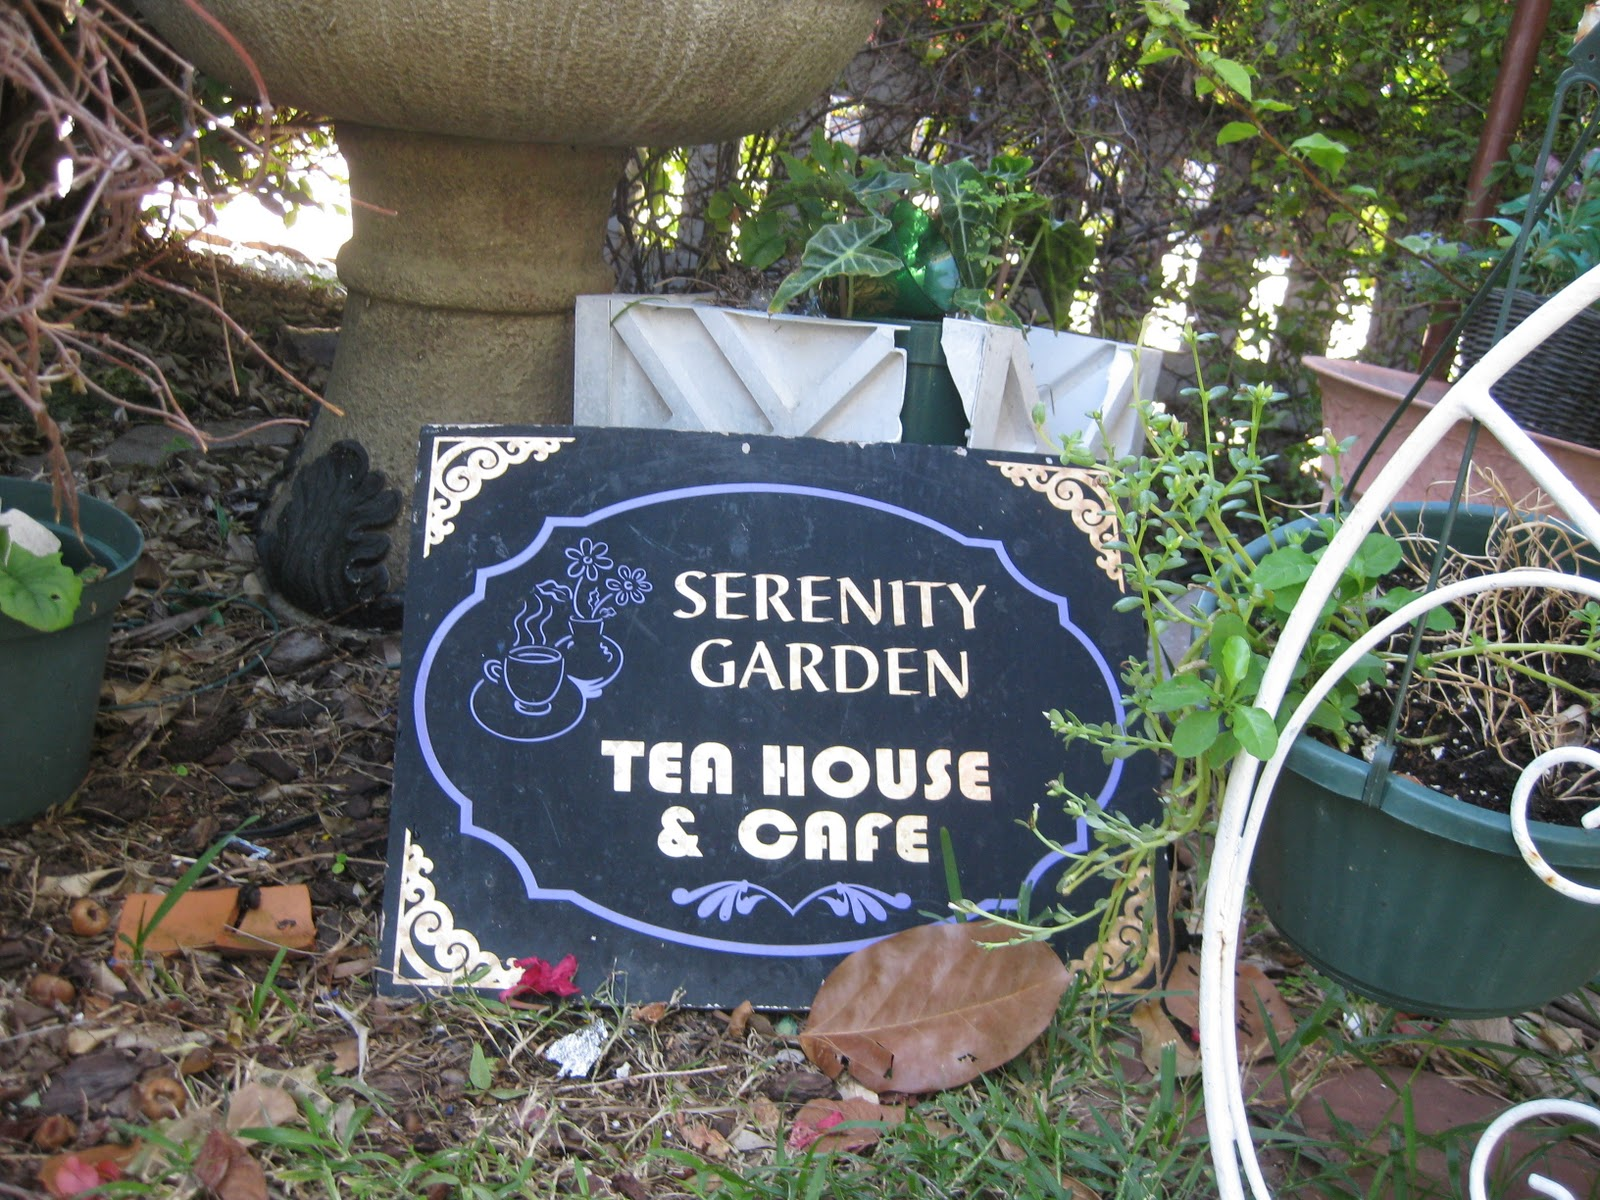 All The Latest Dirt: Serenity Garden Tea House And Cafe, W